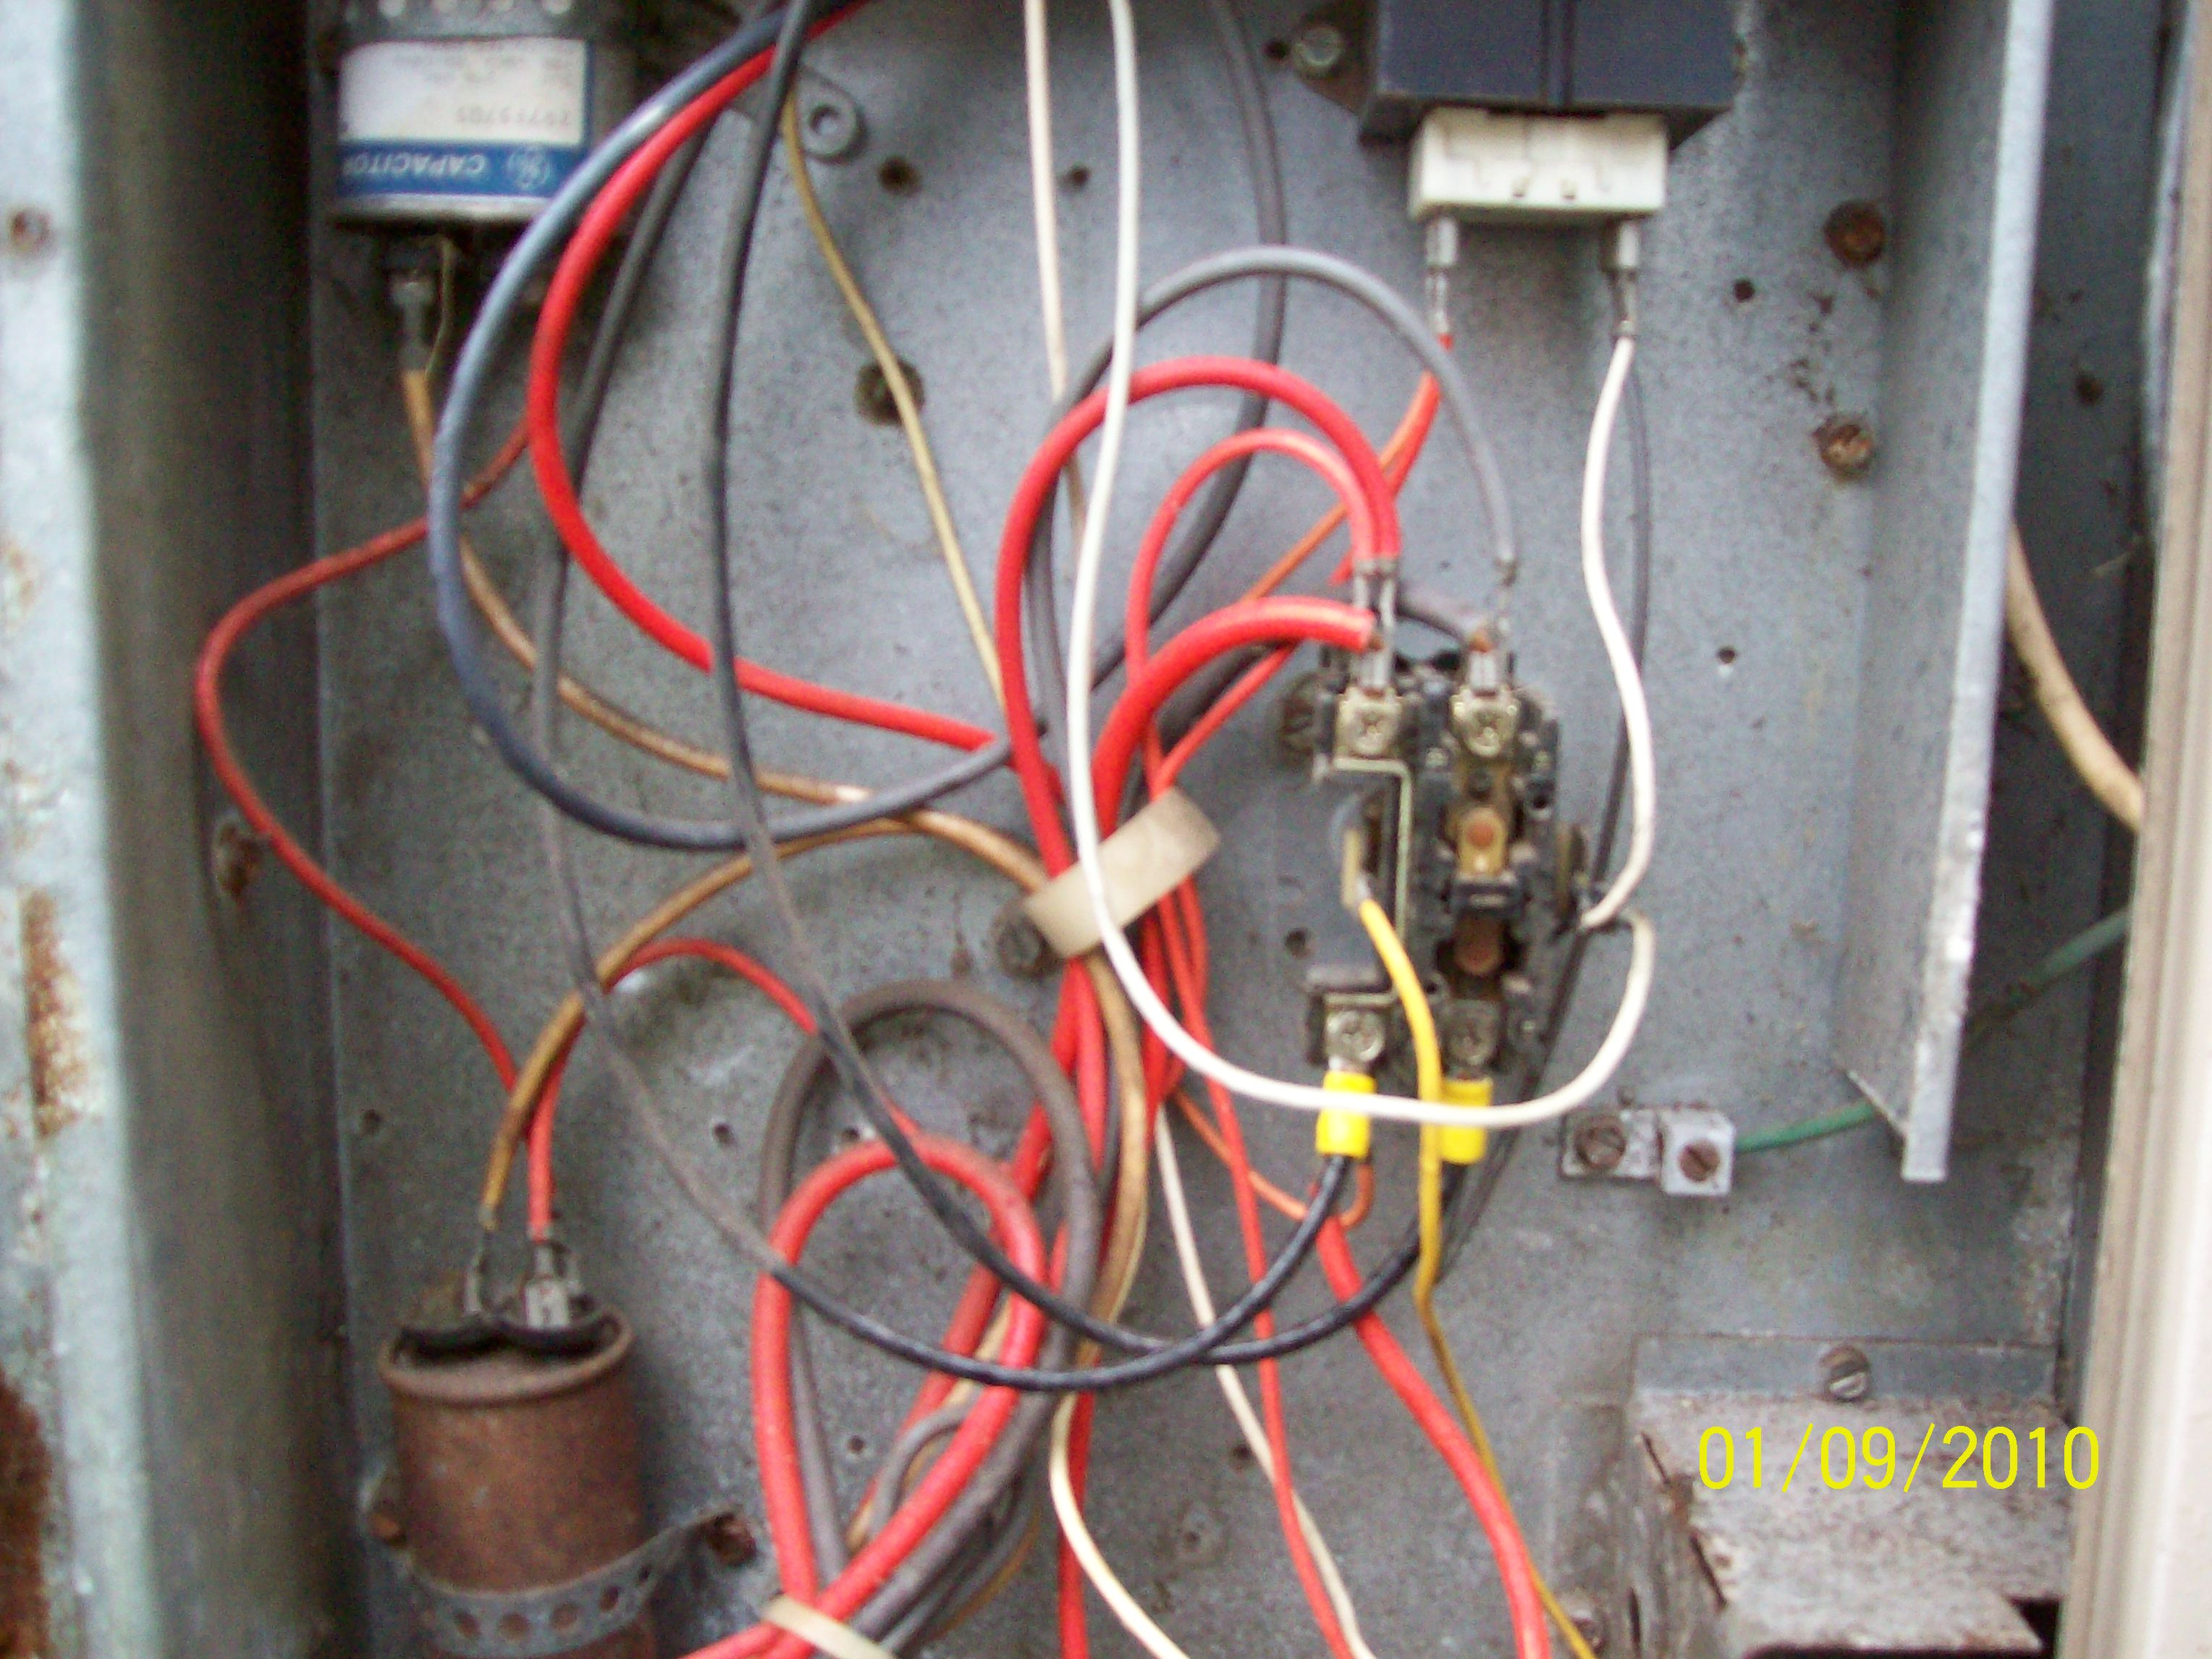 Janitrol Electric Furnace Wiring Diagram Free Download Wiring